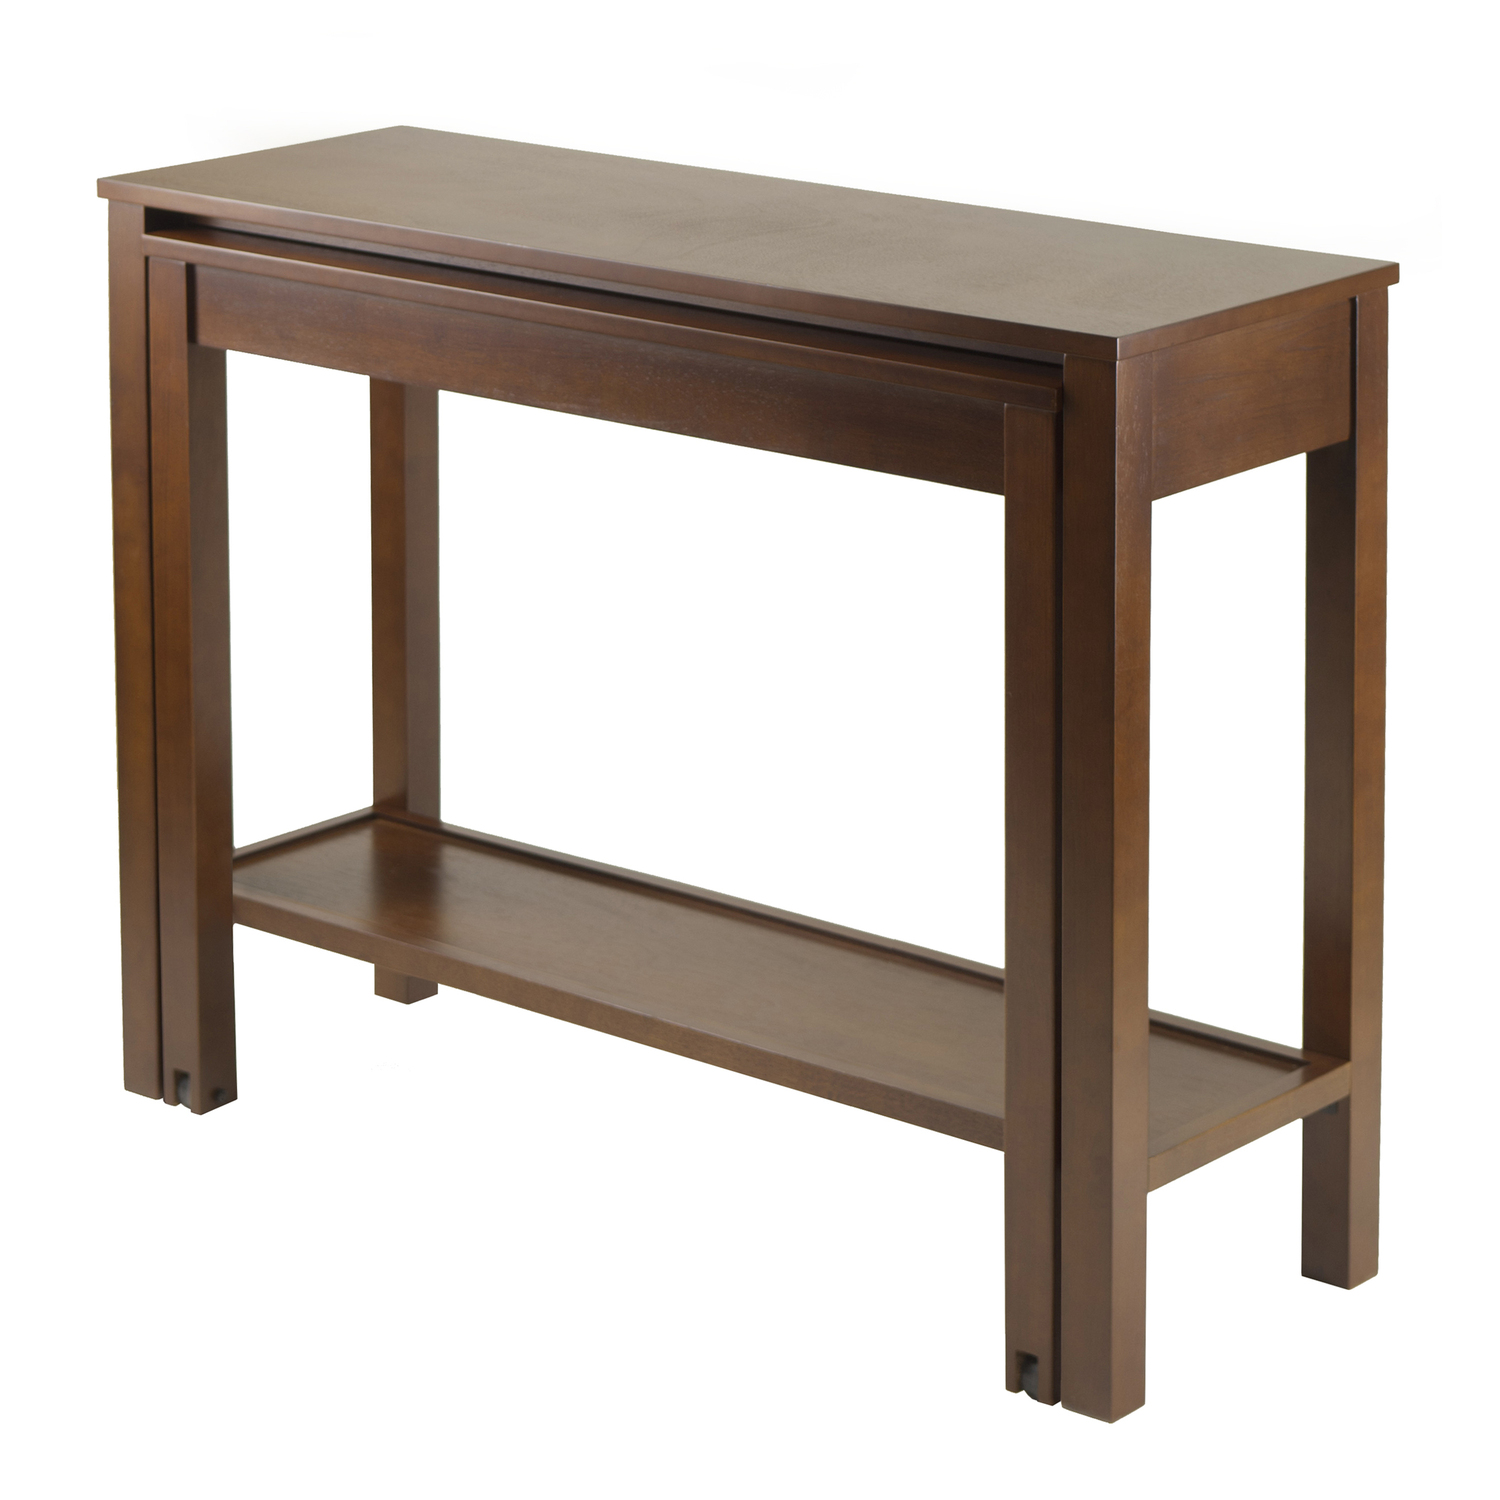 winsome wood brandon expandable console table by oj. Black Bedroom Furniture Sets. Home Design Ideas